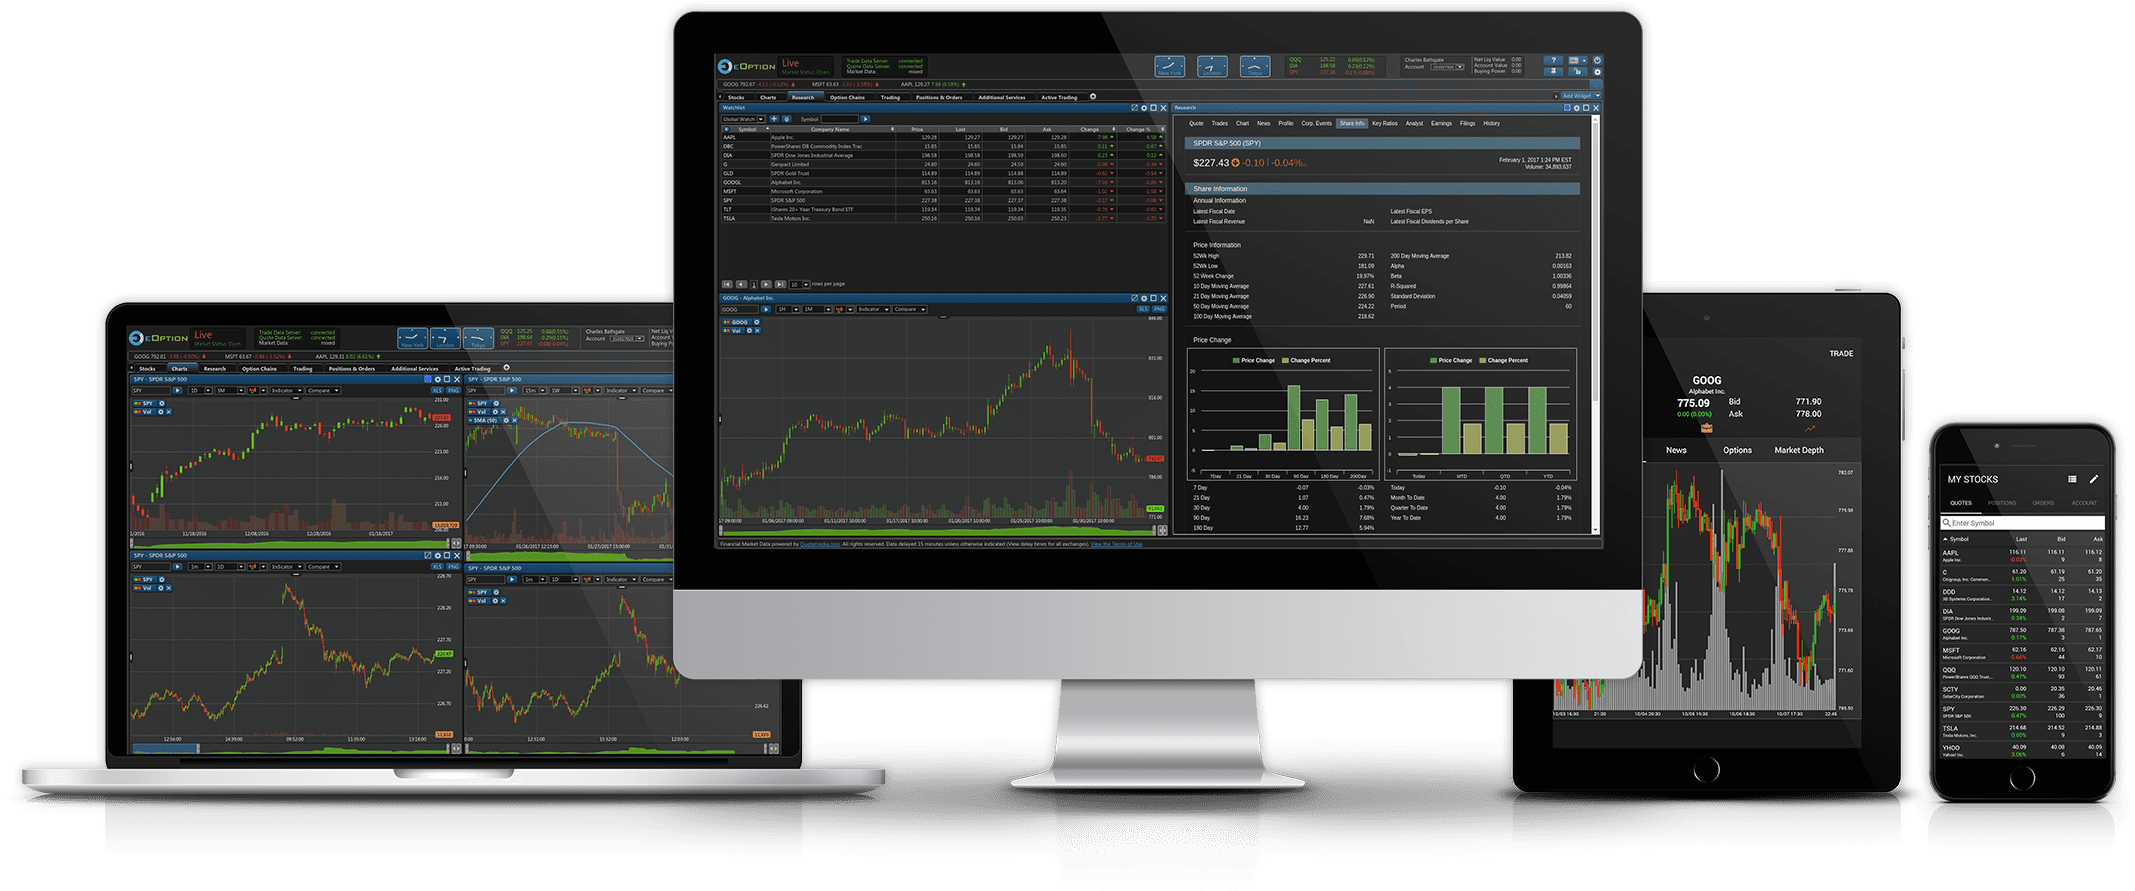 online stock and option trading on mobile, tablet, and desktop